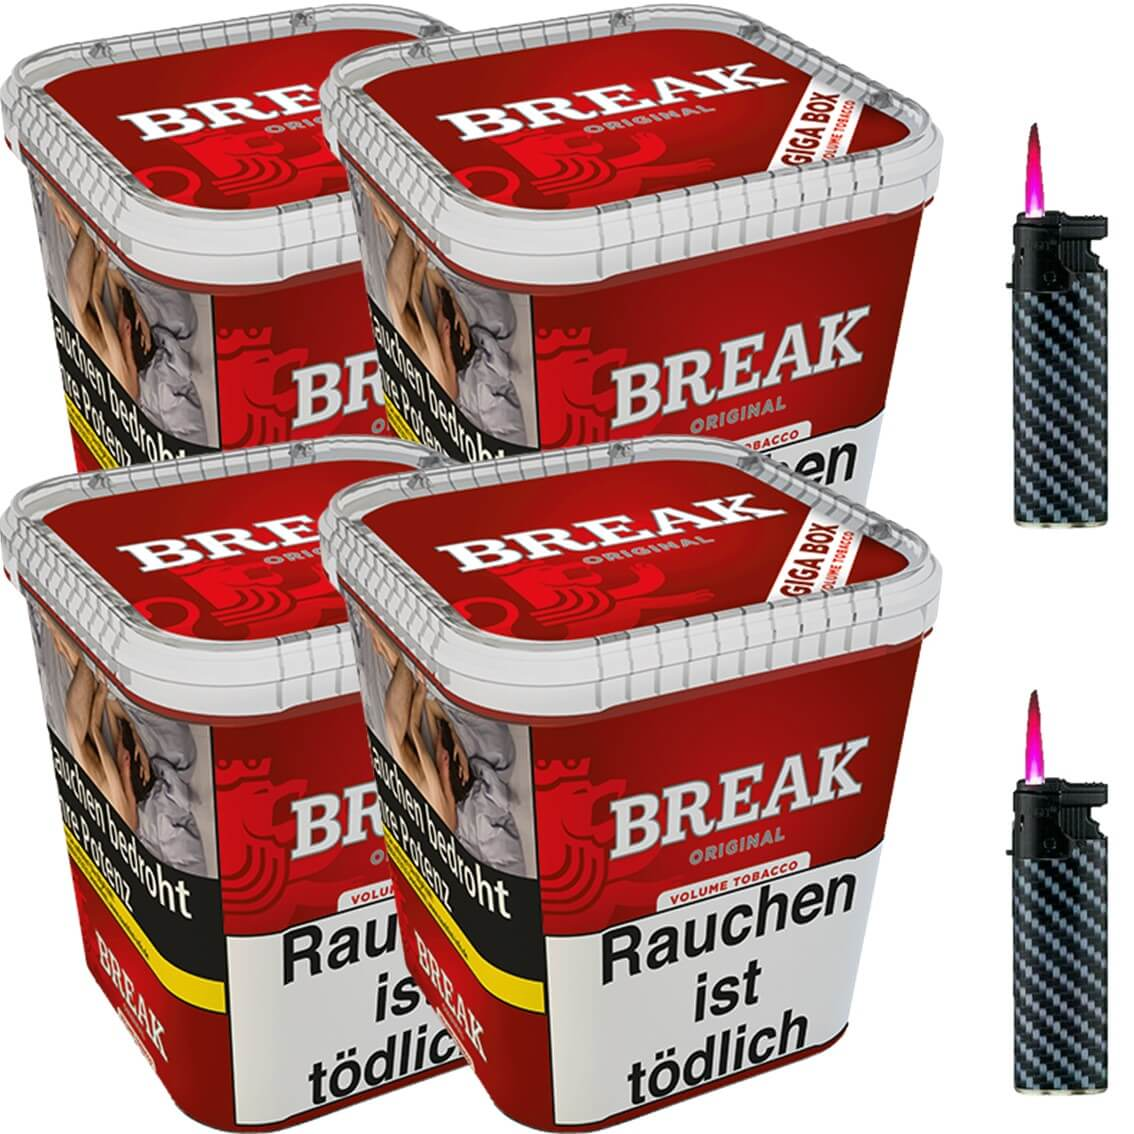 Break Original 4 x 240g Volumentabak 2 x Sturmfeuerzeuge